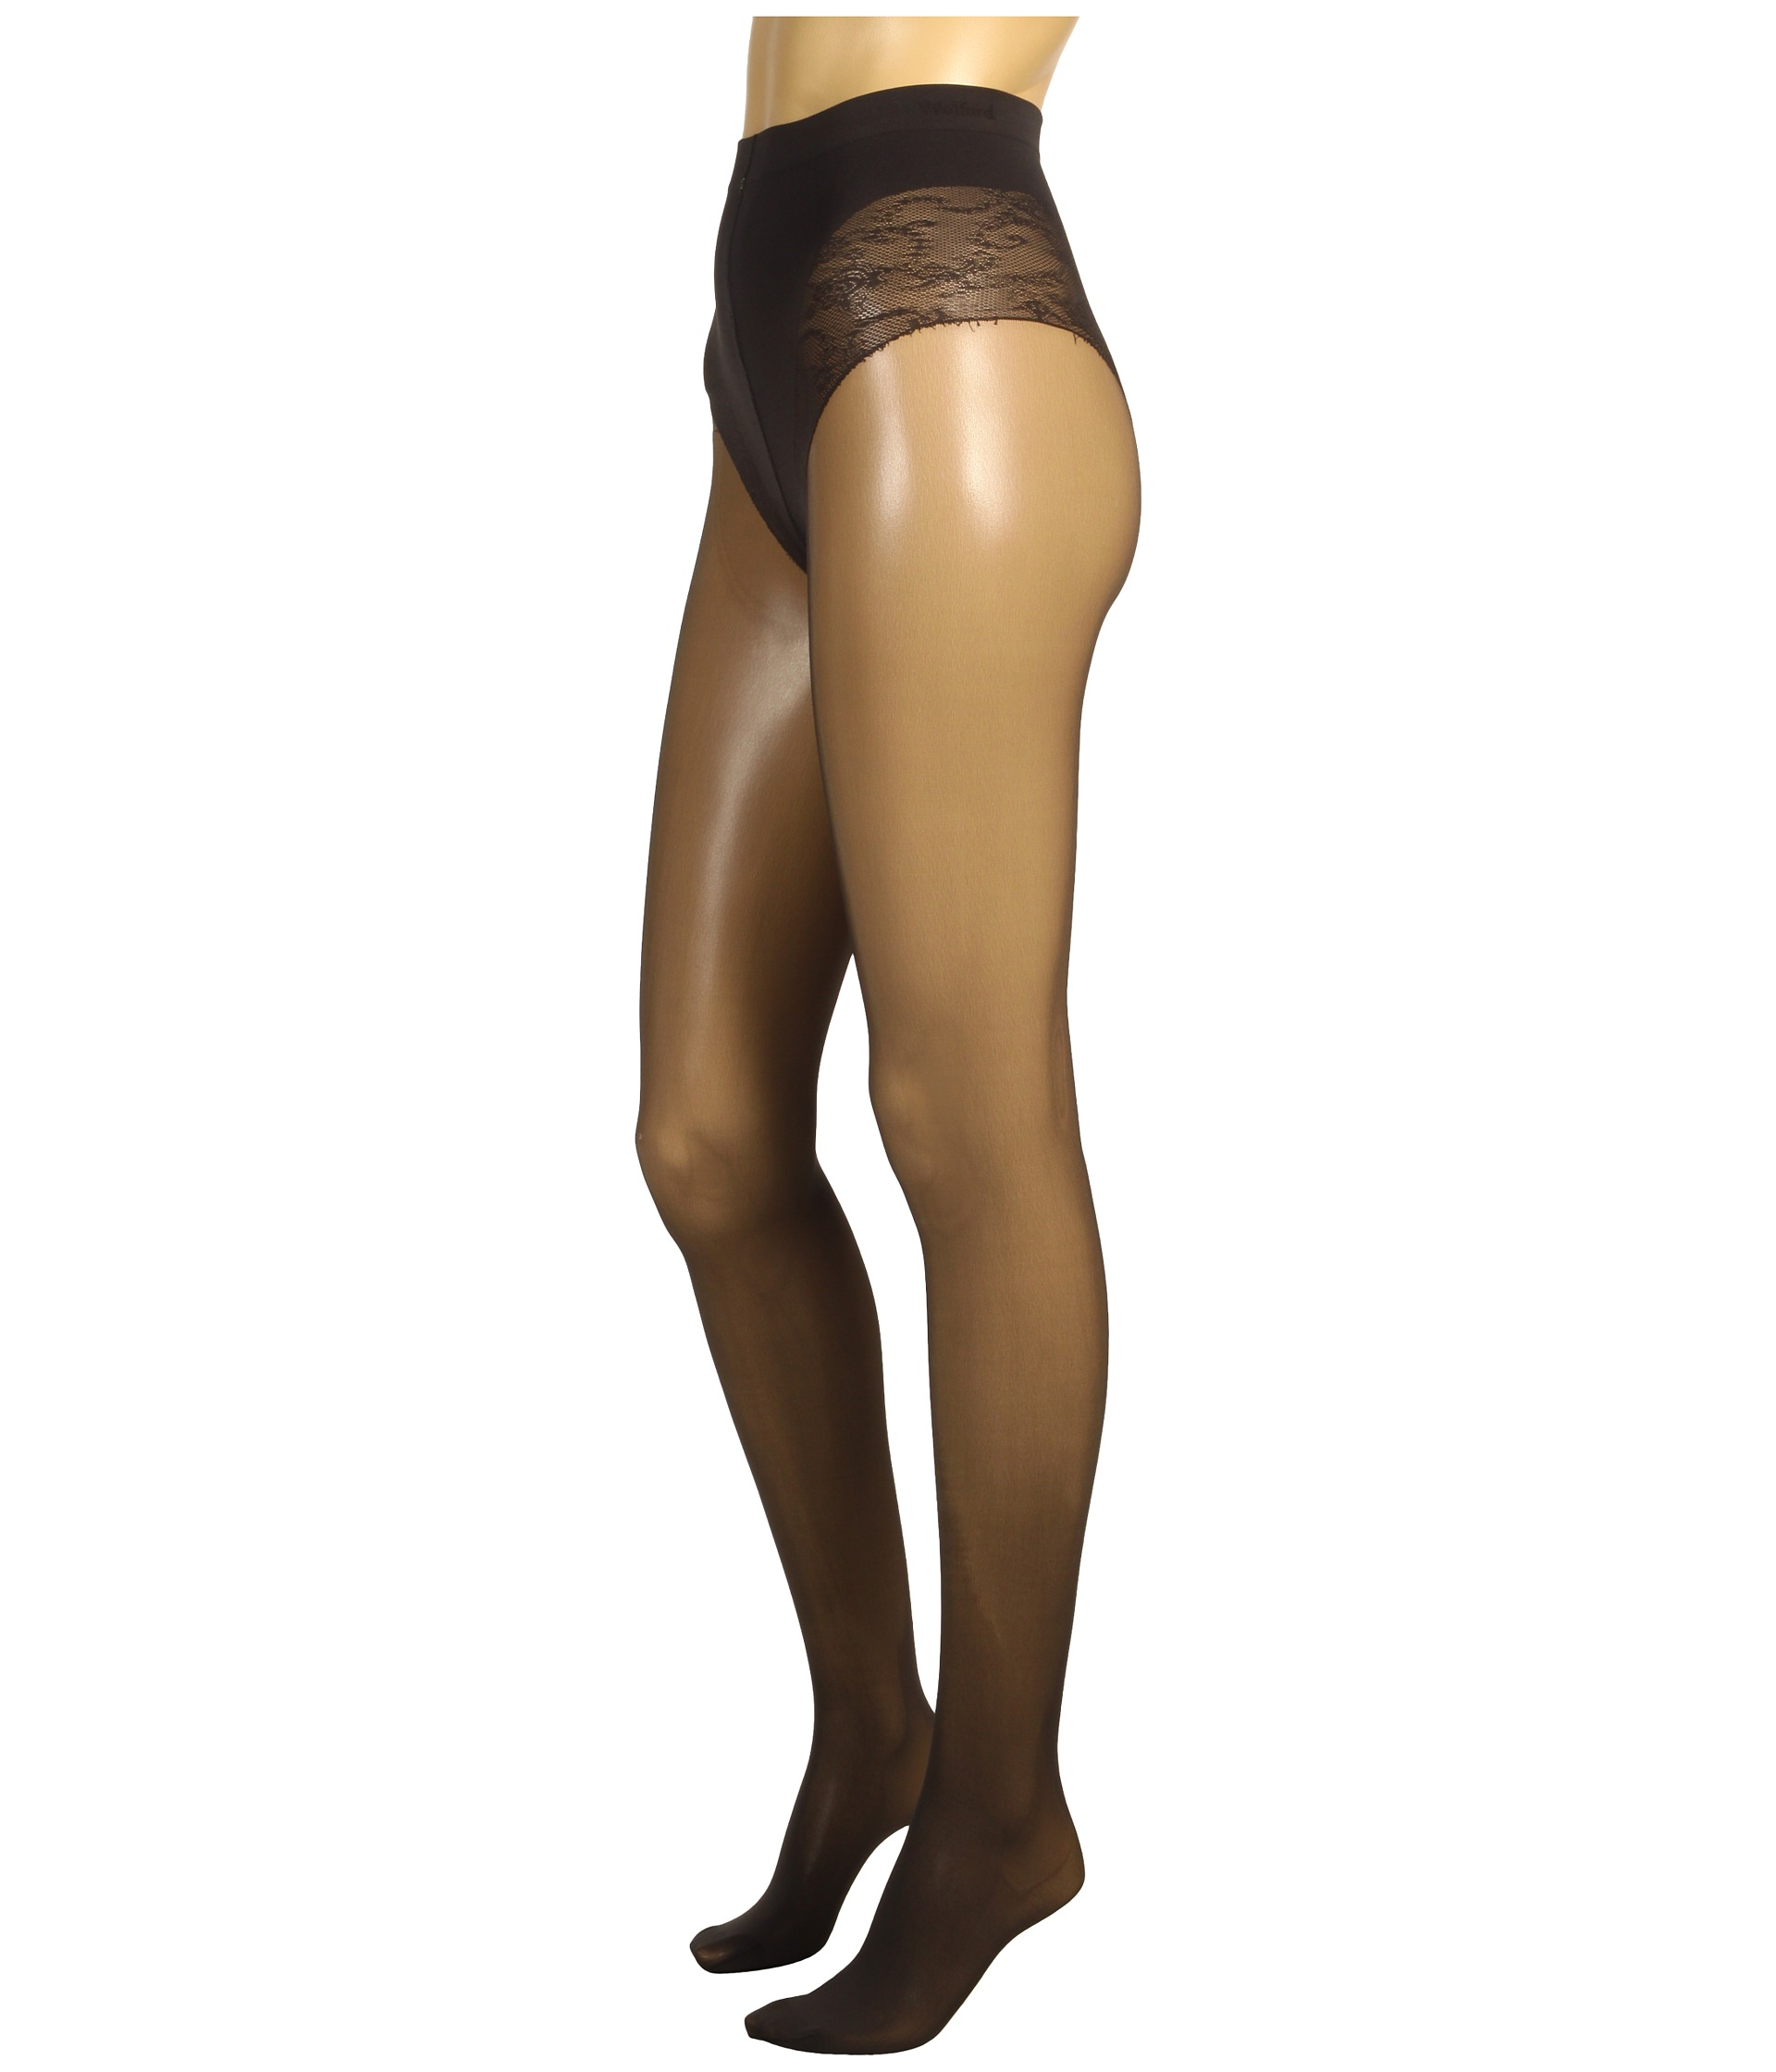 Best Shaping Tights For A Warm Day: Wolford Luxe 9 Control Top Tights As you surely know, Spanx has the reputation for being the best shaping tights, but we believe these Wolford shaping sheer tights are one of the best (if not the best) ultra sheer shaping tights you can find out there.